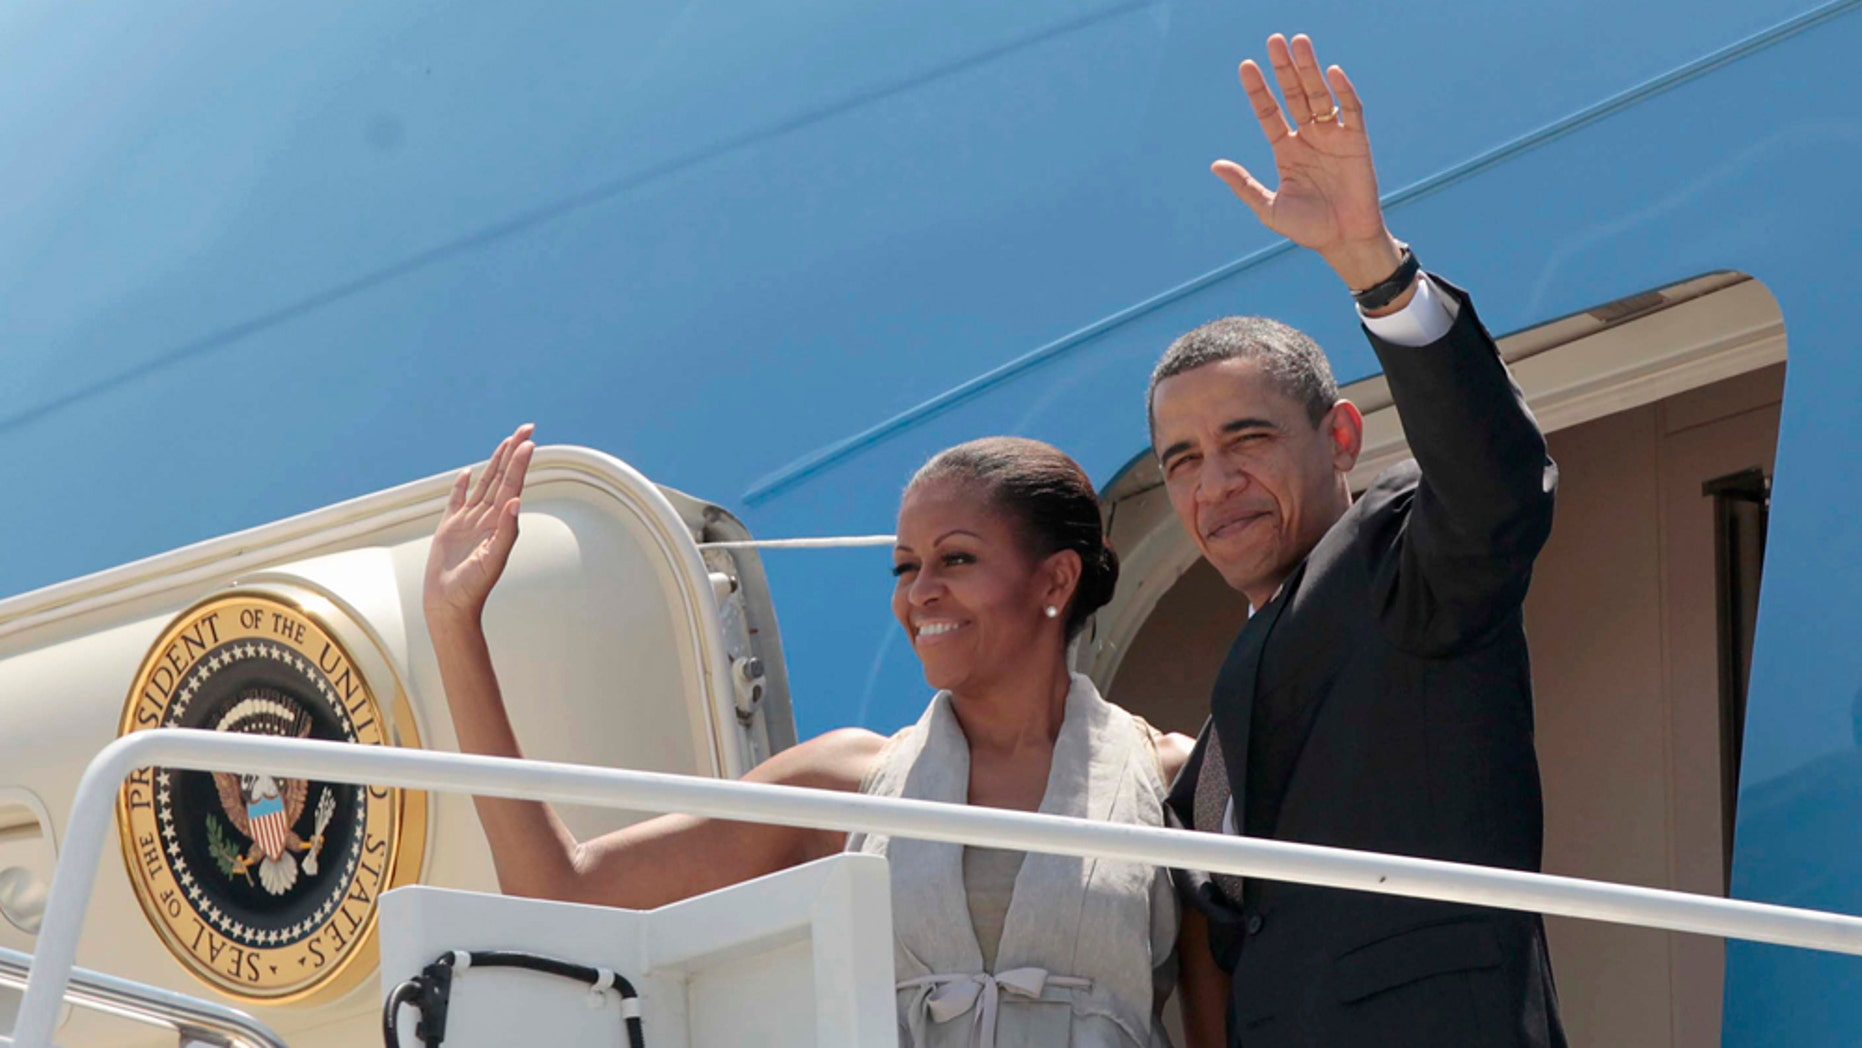 President Barack Obama and first lady Michelle Obama wave prior to boarding Air Force prior to departing San Salvador, El Salvador, Wednesday, March 23, 2011. (AP Photo/Pablo Martinez Monsivais)